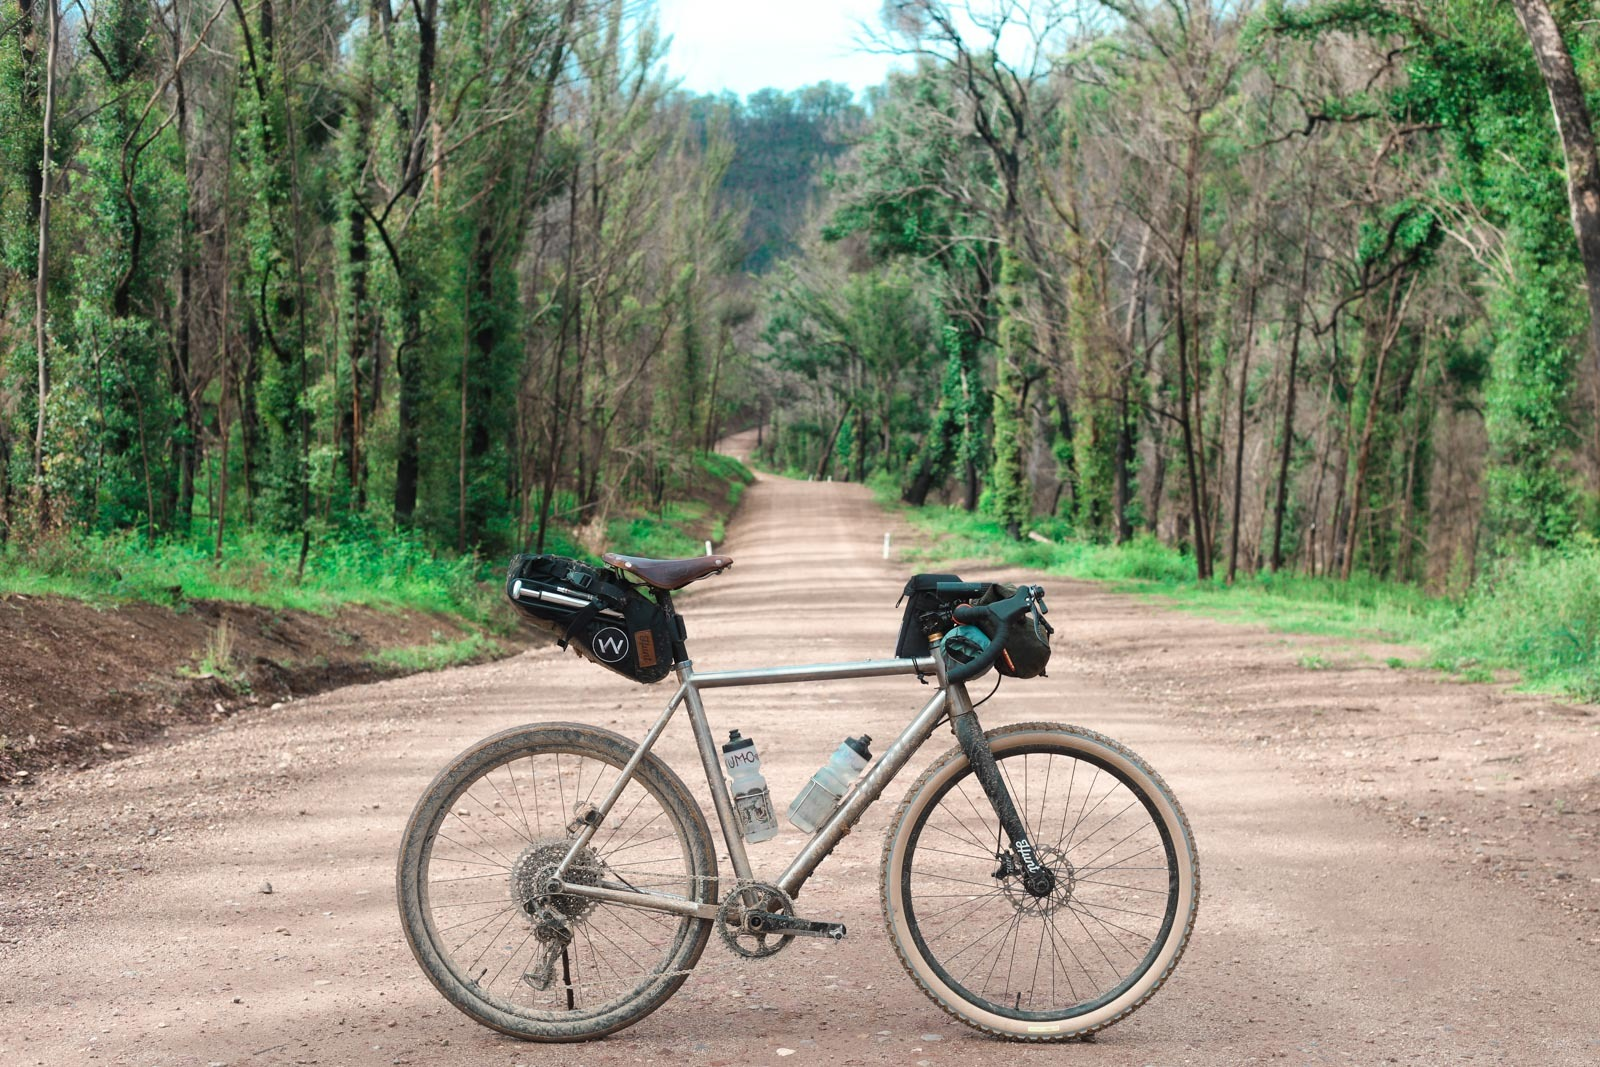 Bikepacking rig - photo taken in Deua National Park on the route from Canberra to the Coast